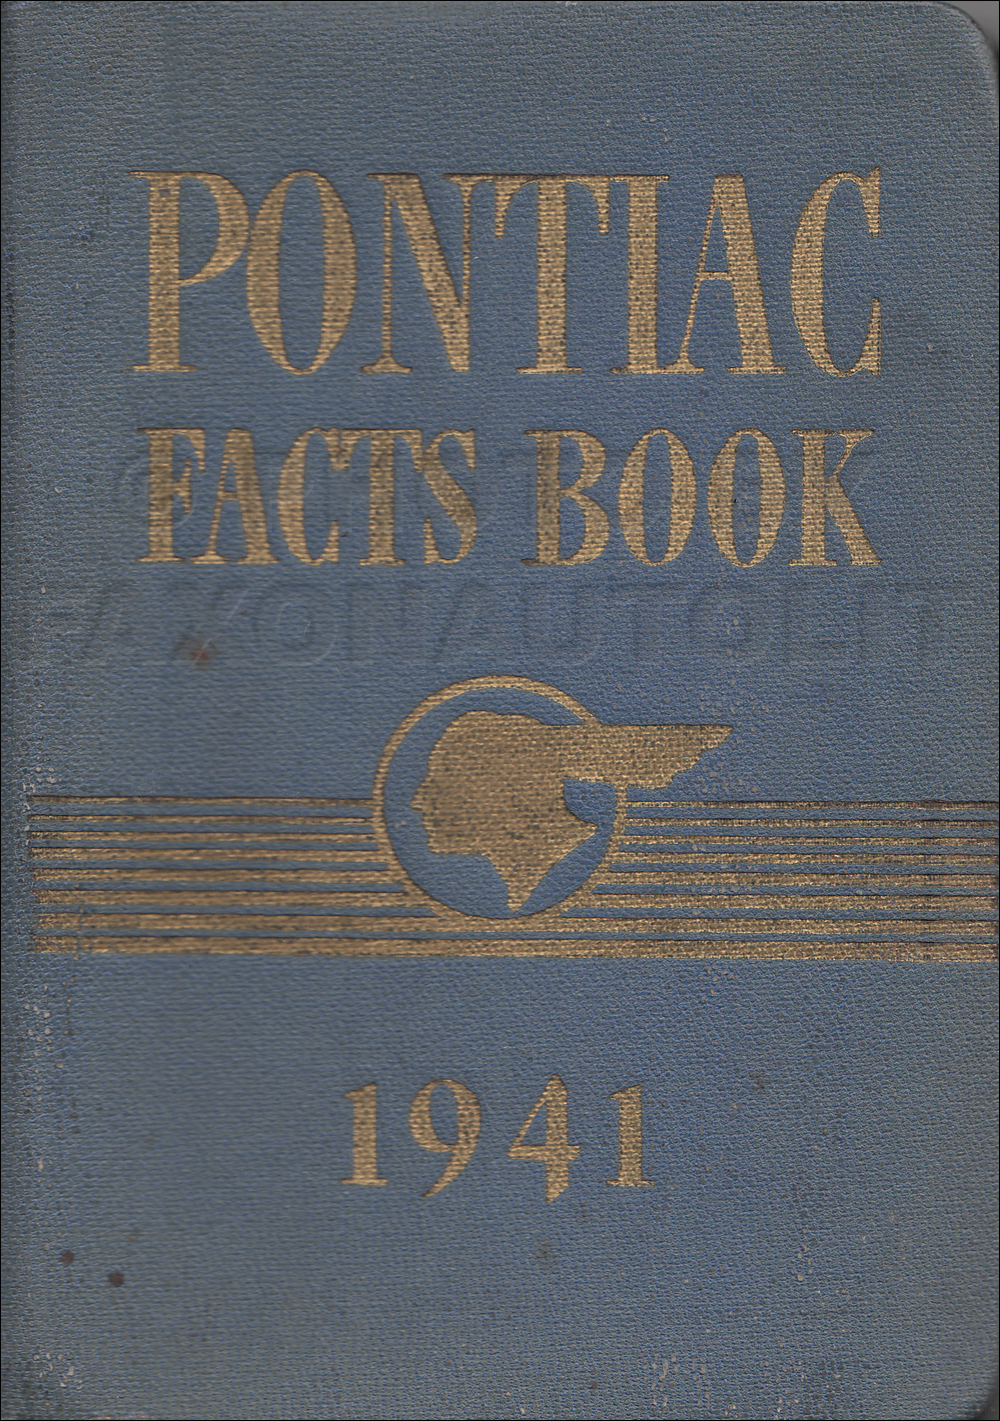 1941 Pontiac Facts Book Original